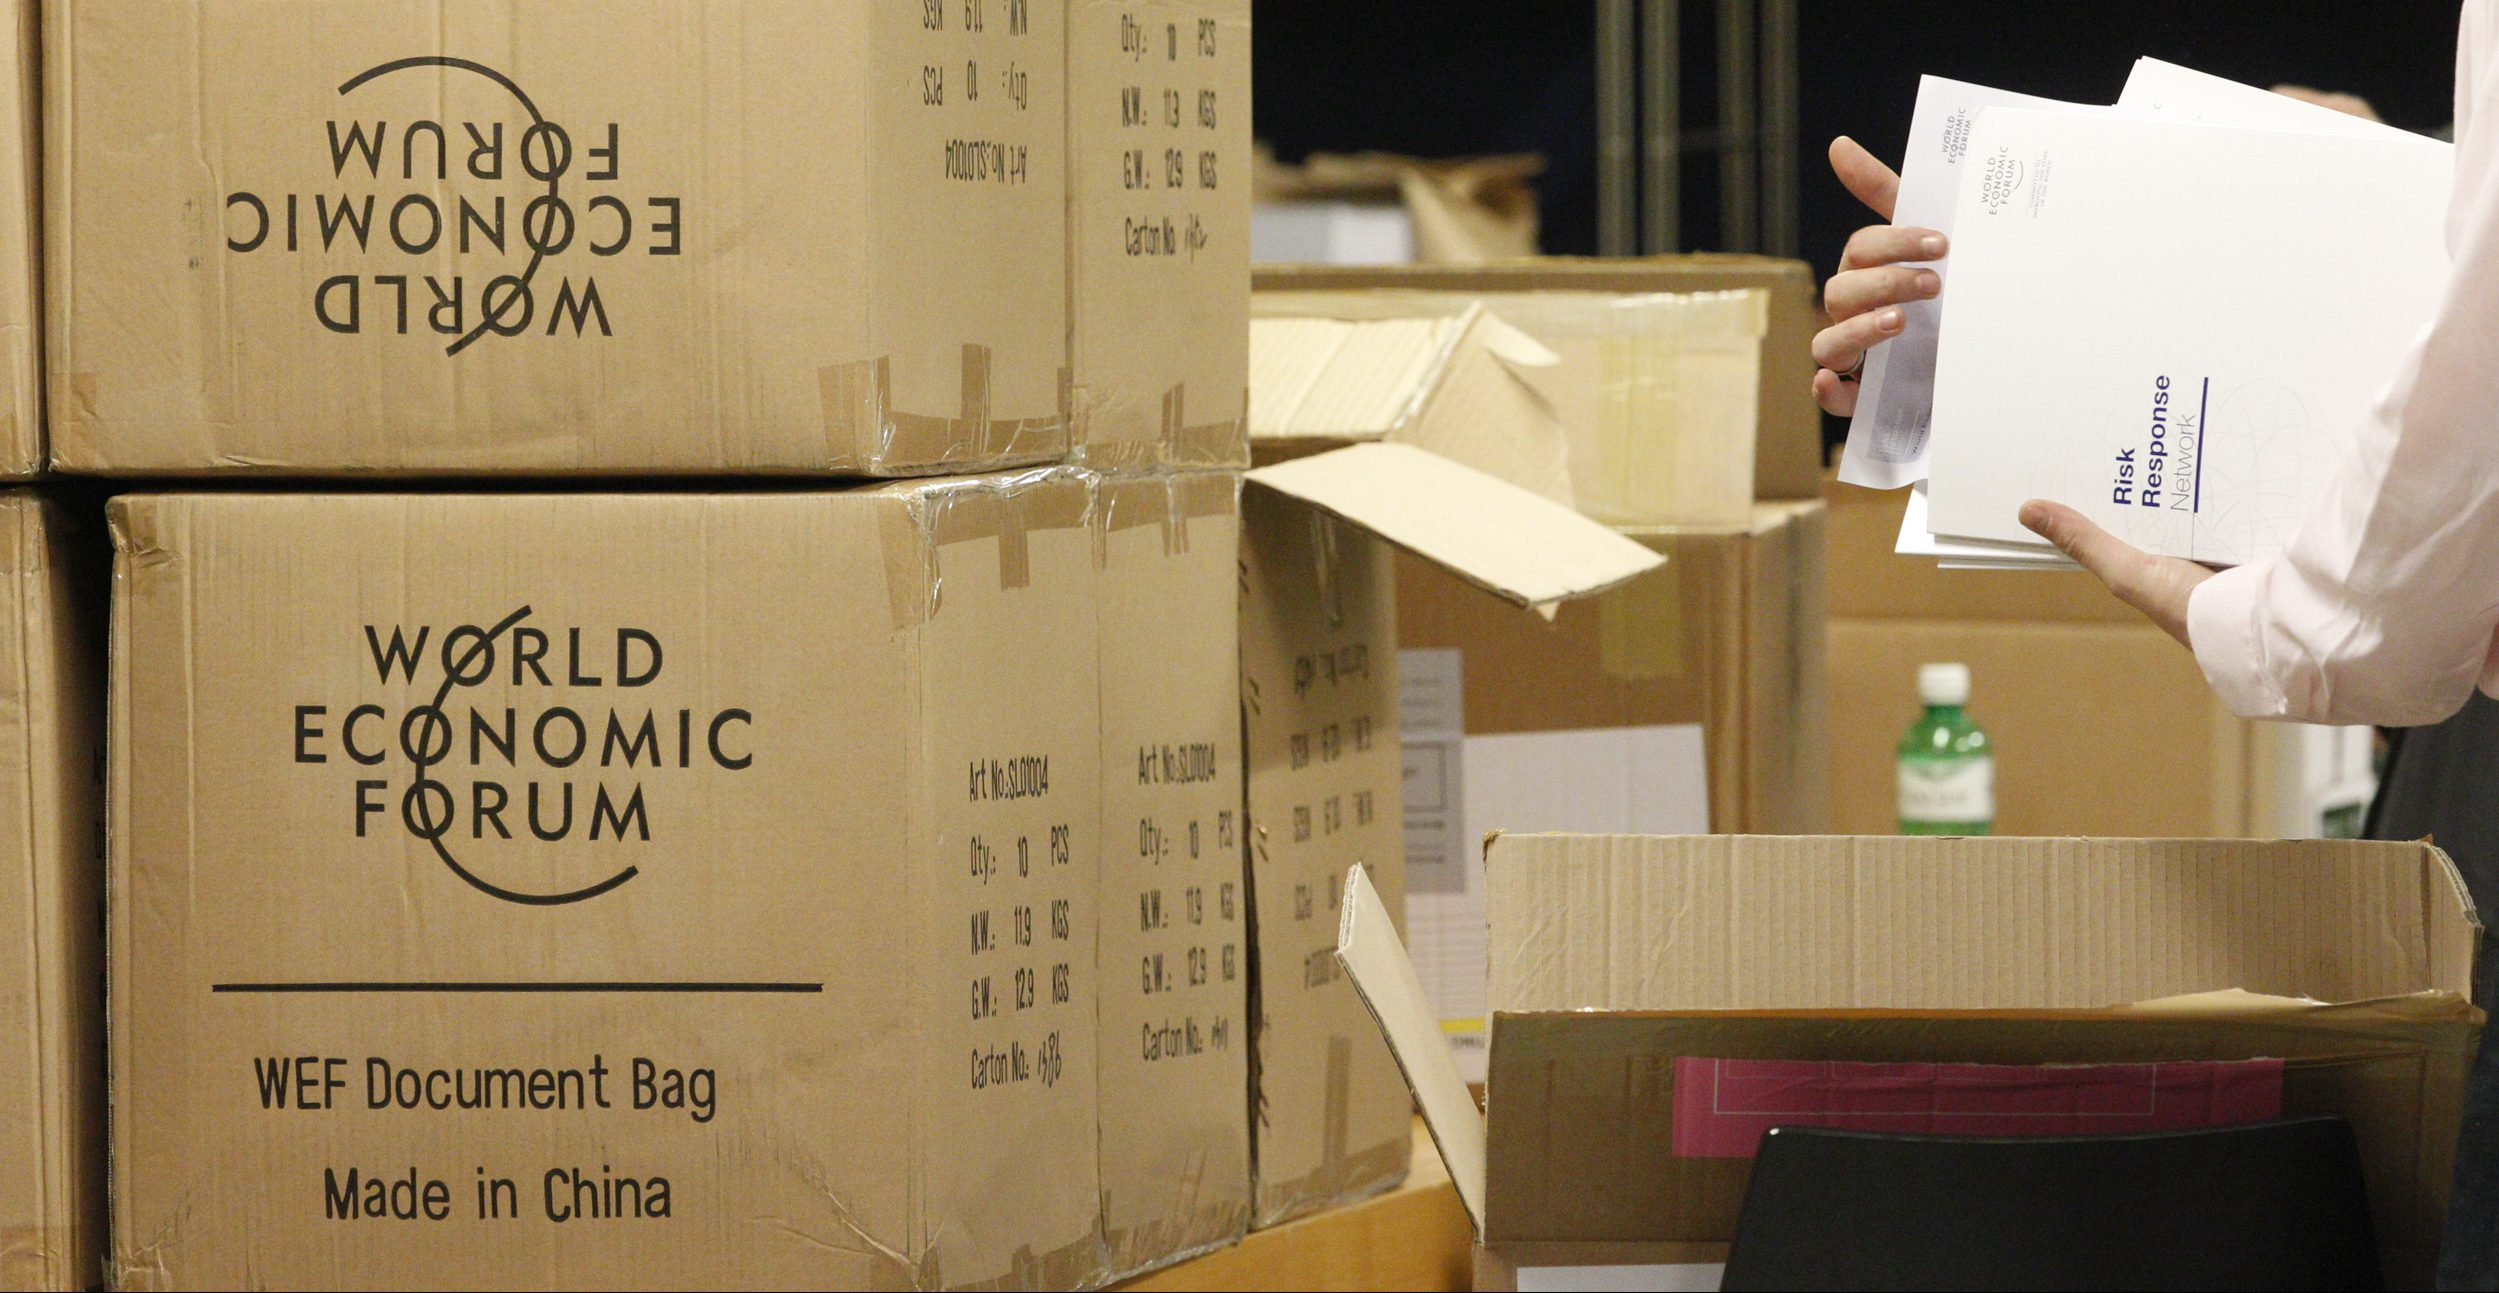 Workers pack documents on the last day of the World Economic Forum (WEF) in Davos, January 30, 2011.